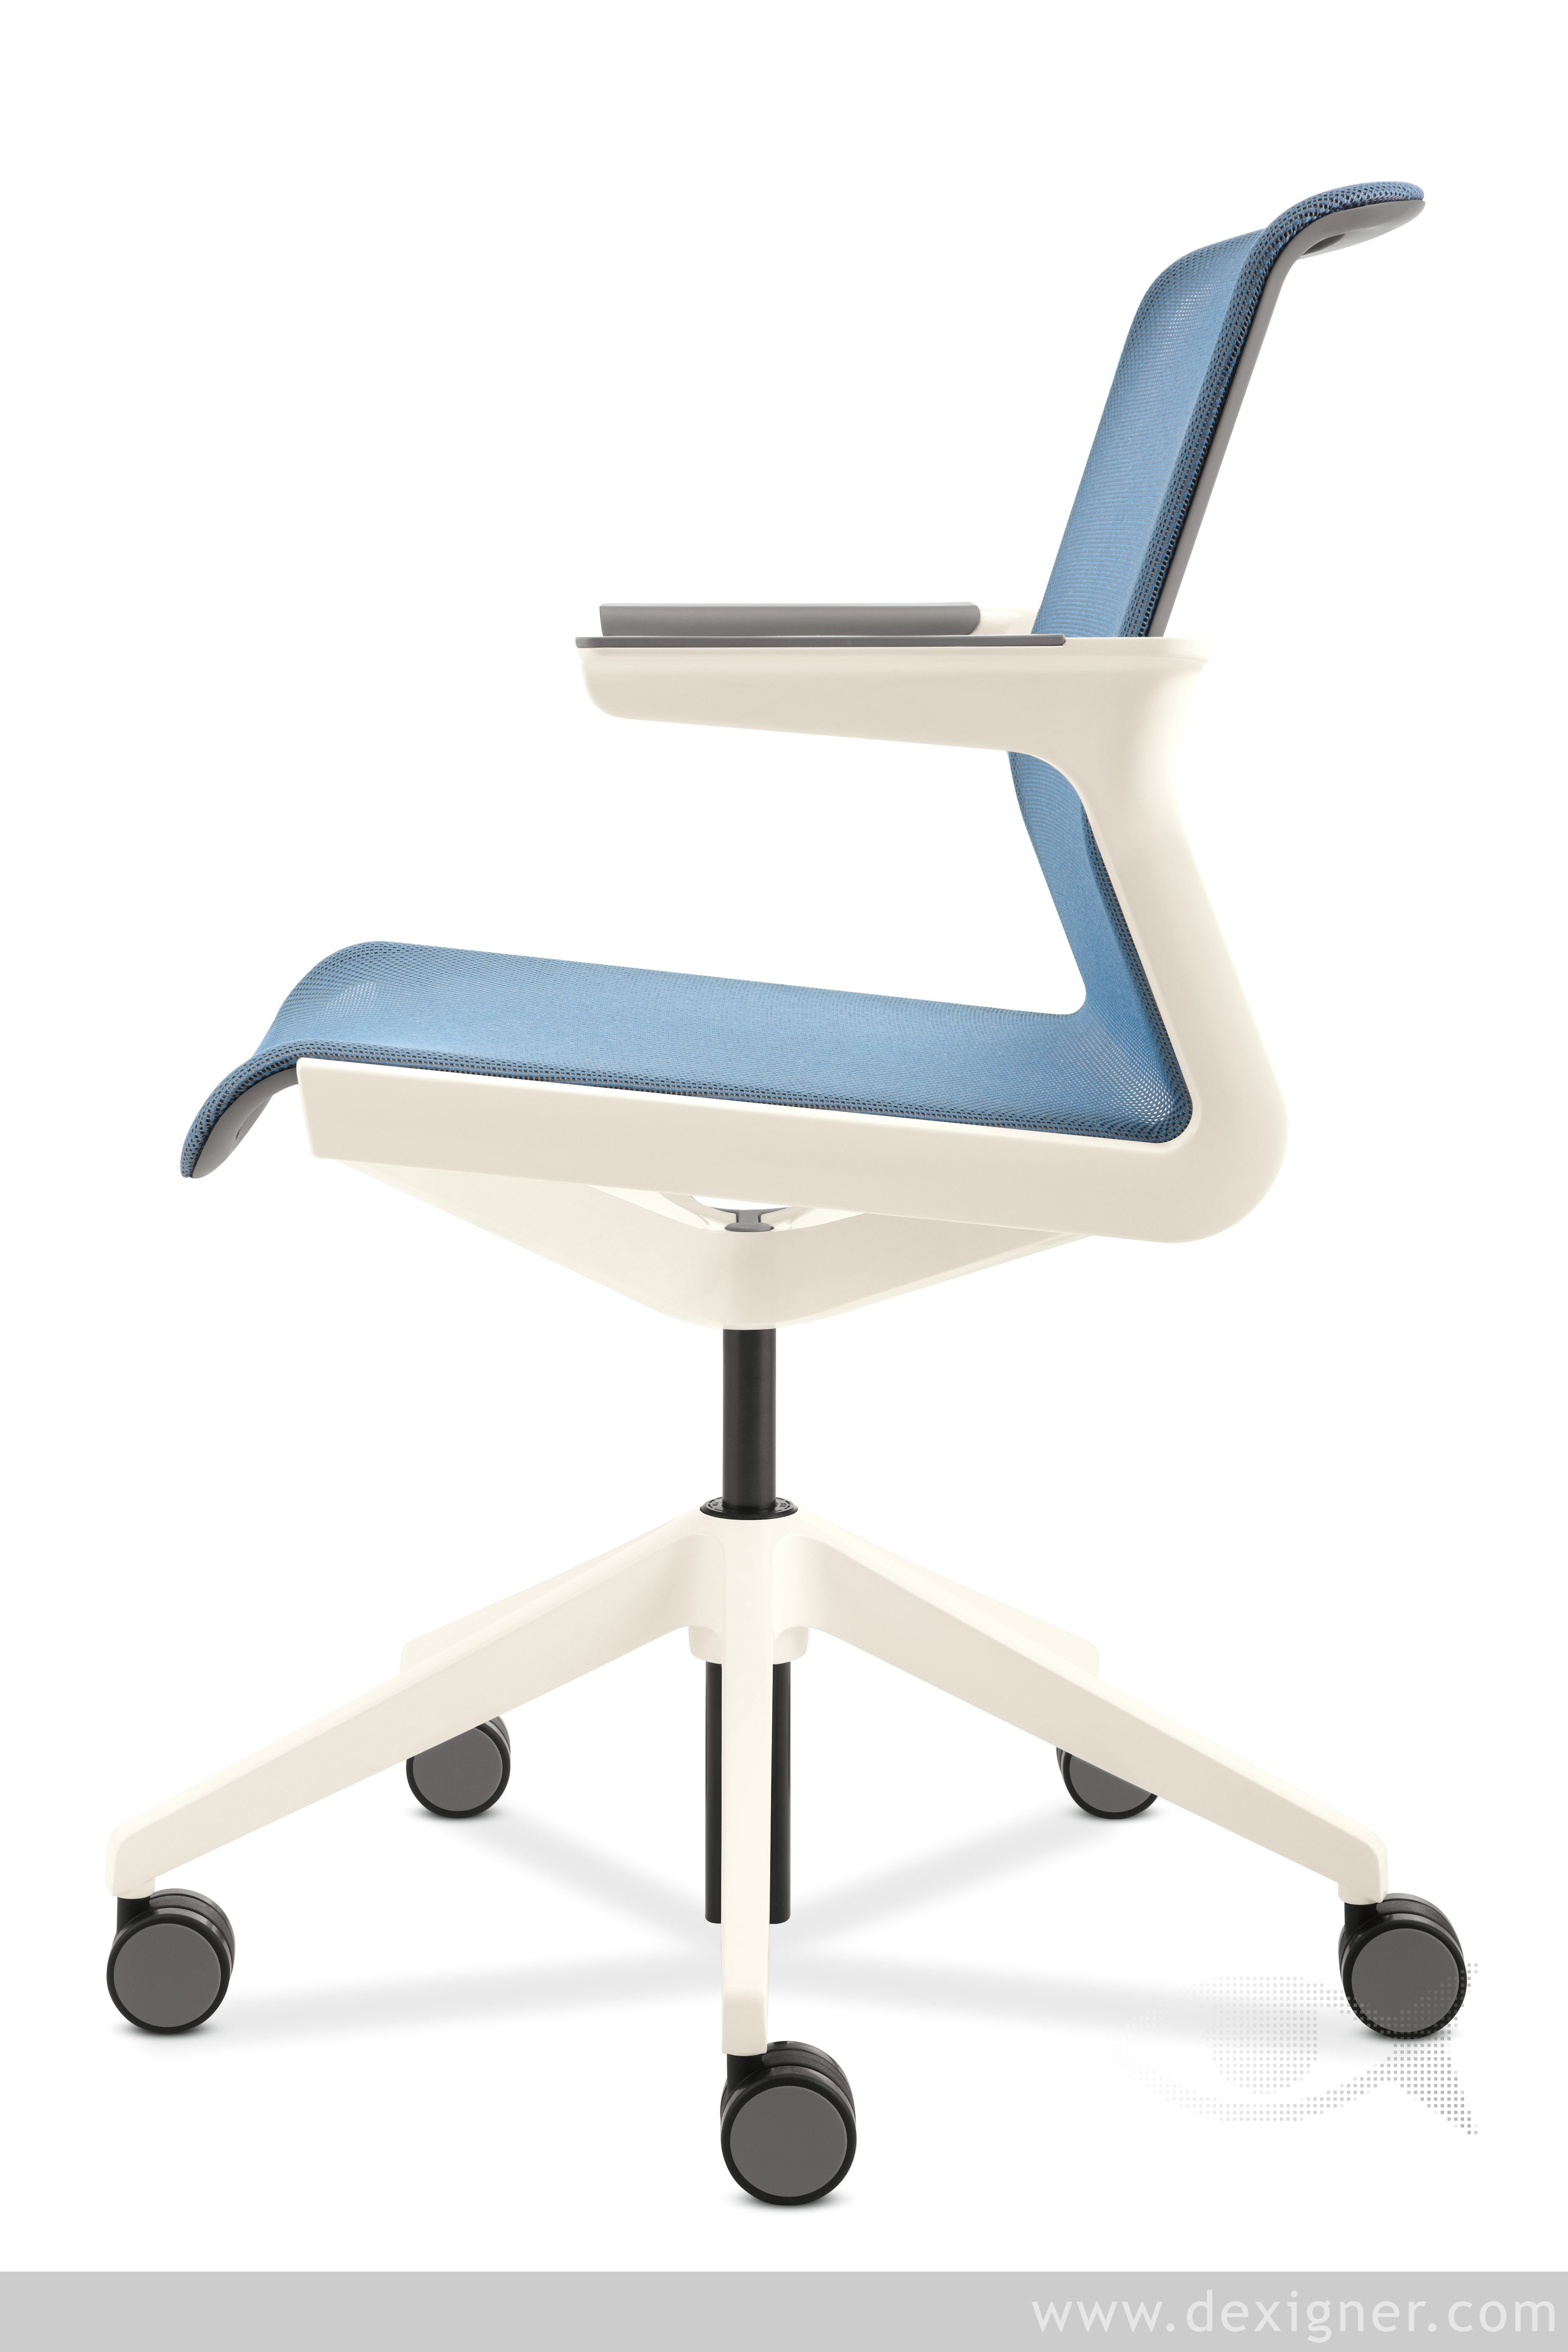 Superb Kontoritool Office Chair Tooted Products Bmw Design Machost Co Dining Chair Design Ideas Machostcouk